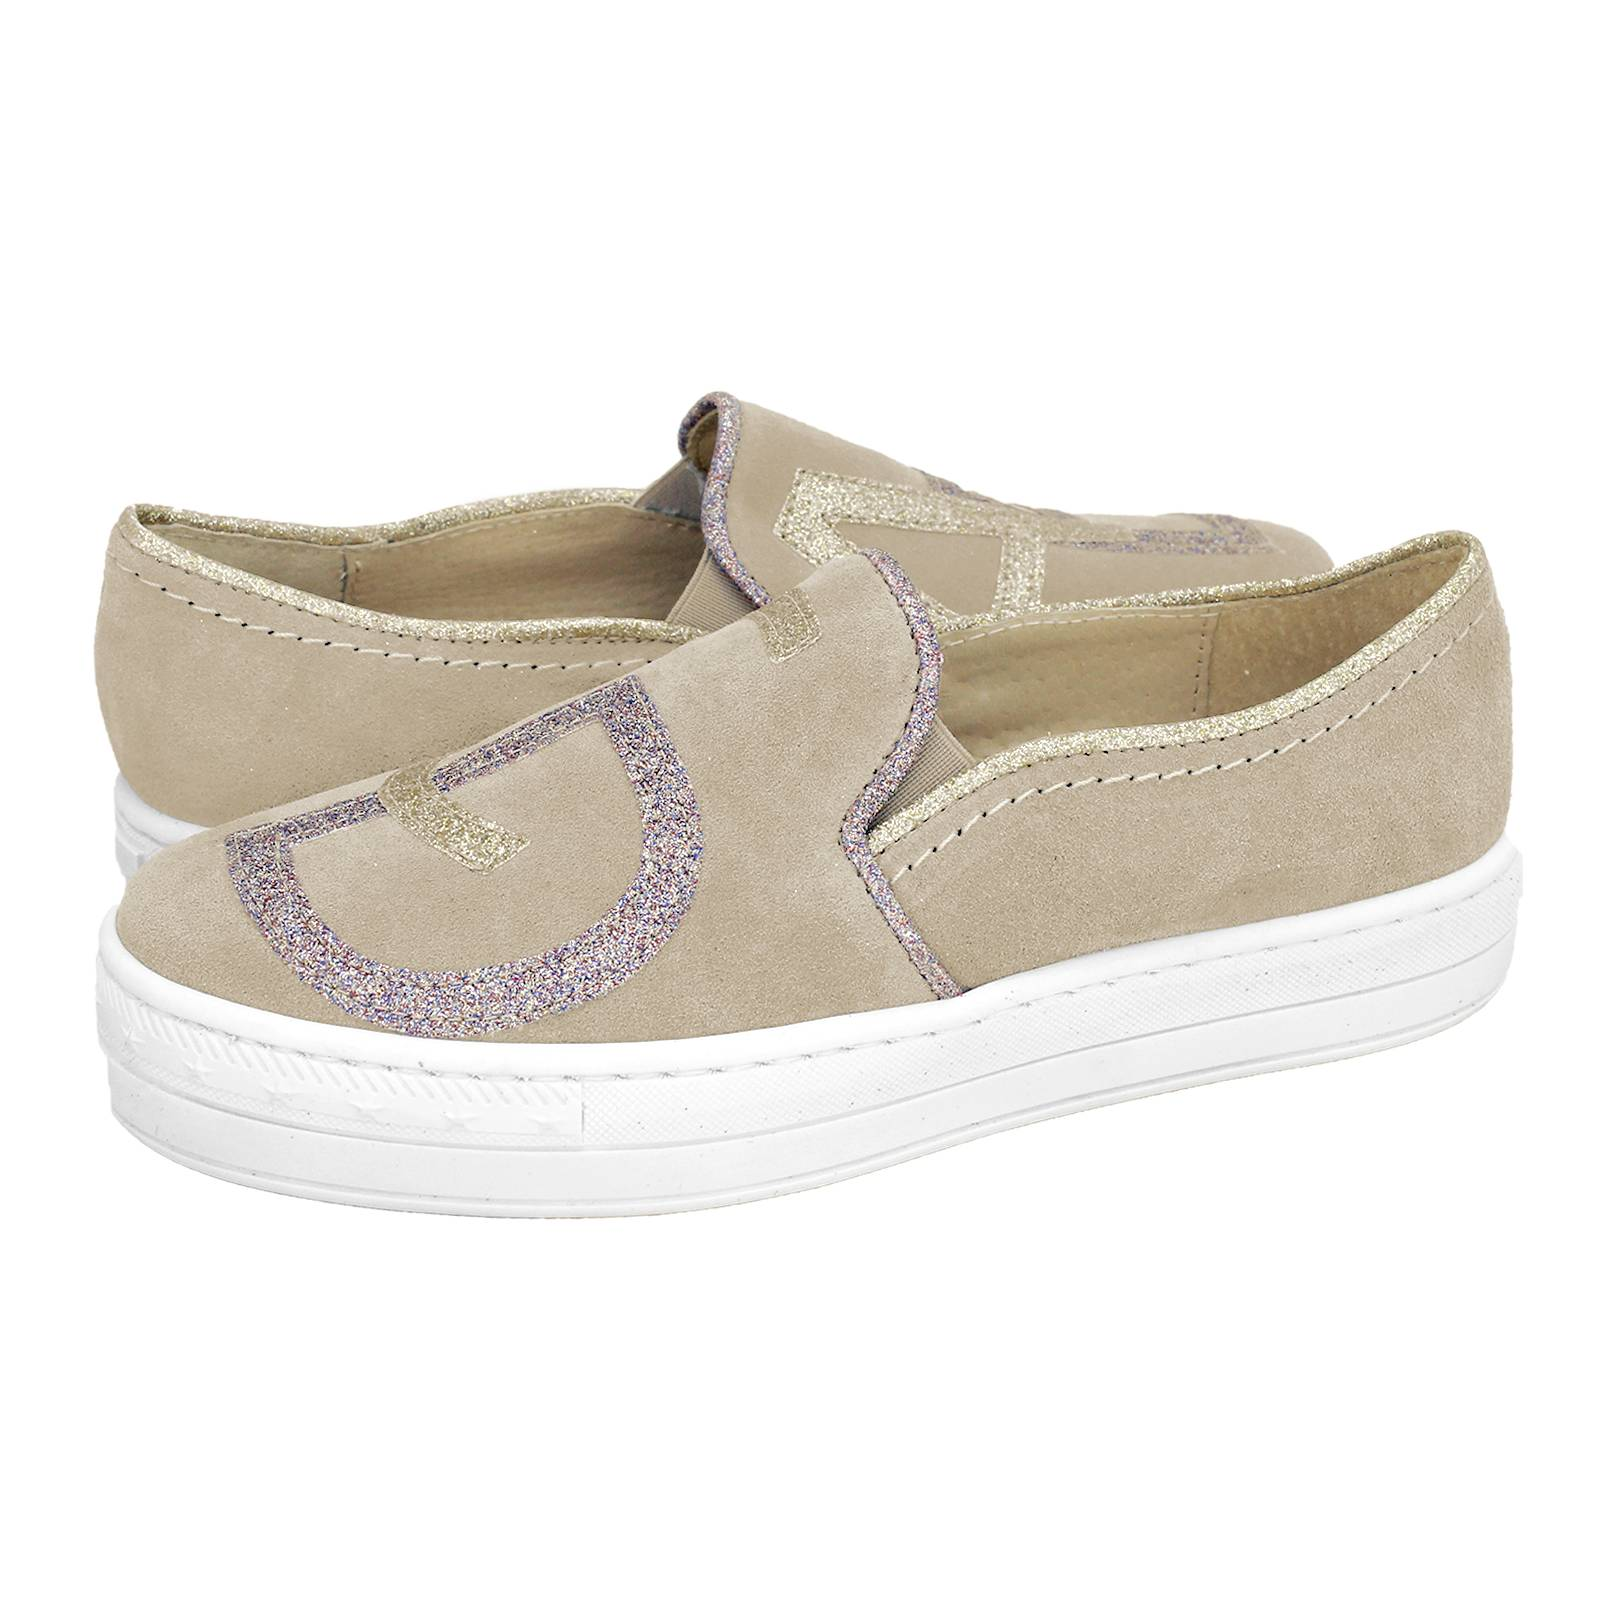 Cayce - Esthissis Women s casual shoes made of suede - Gianna ... 97ee45275d2